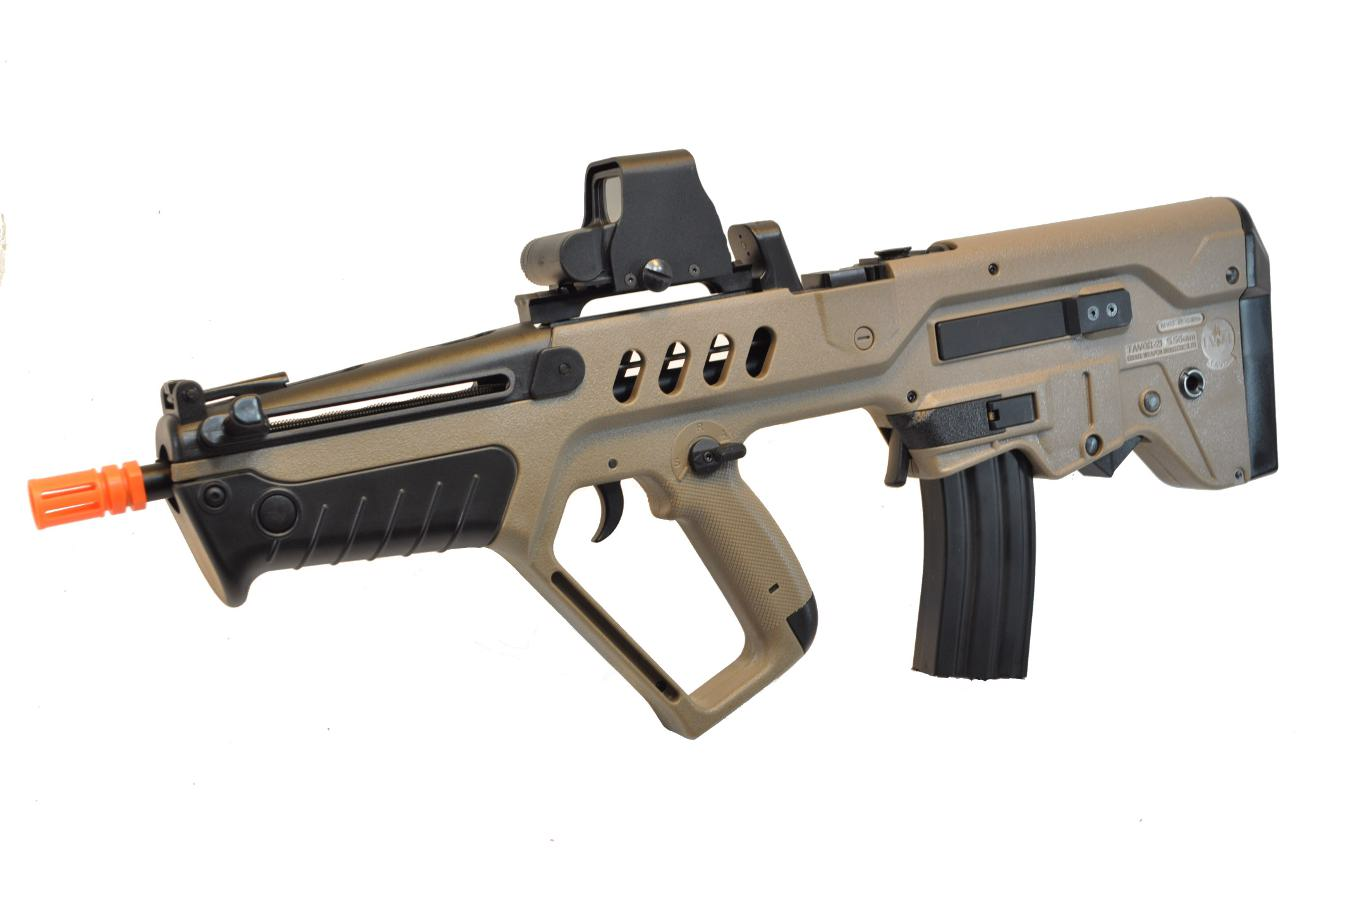 tar21_st_tavor_airsoft_gun_eotech_scope.